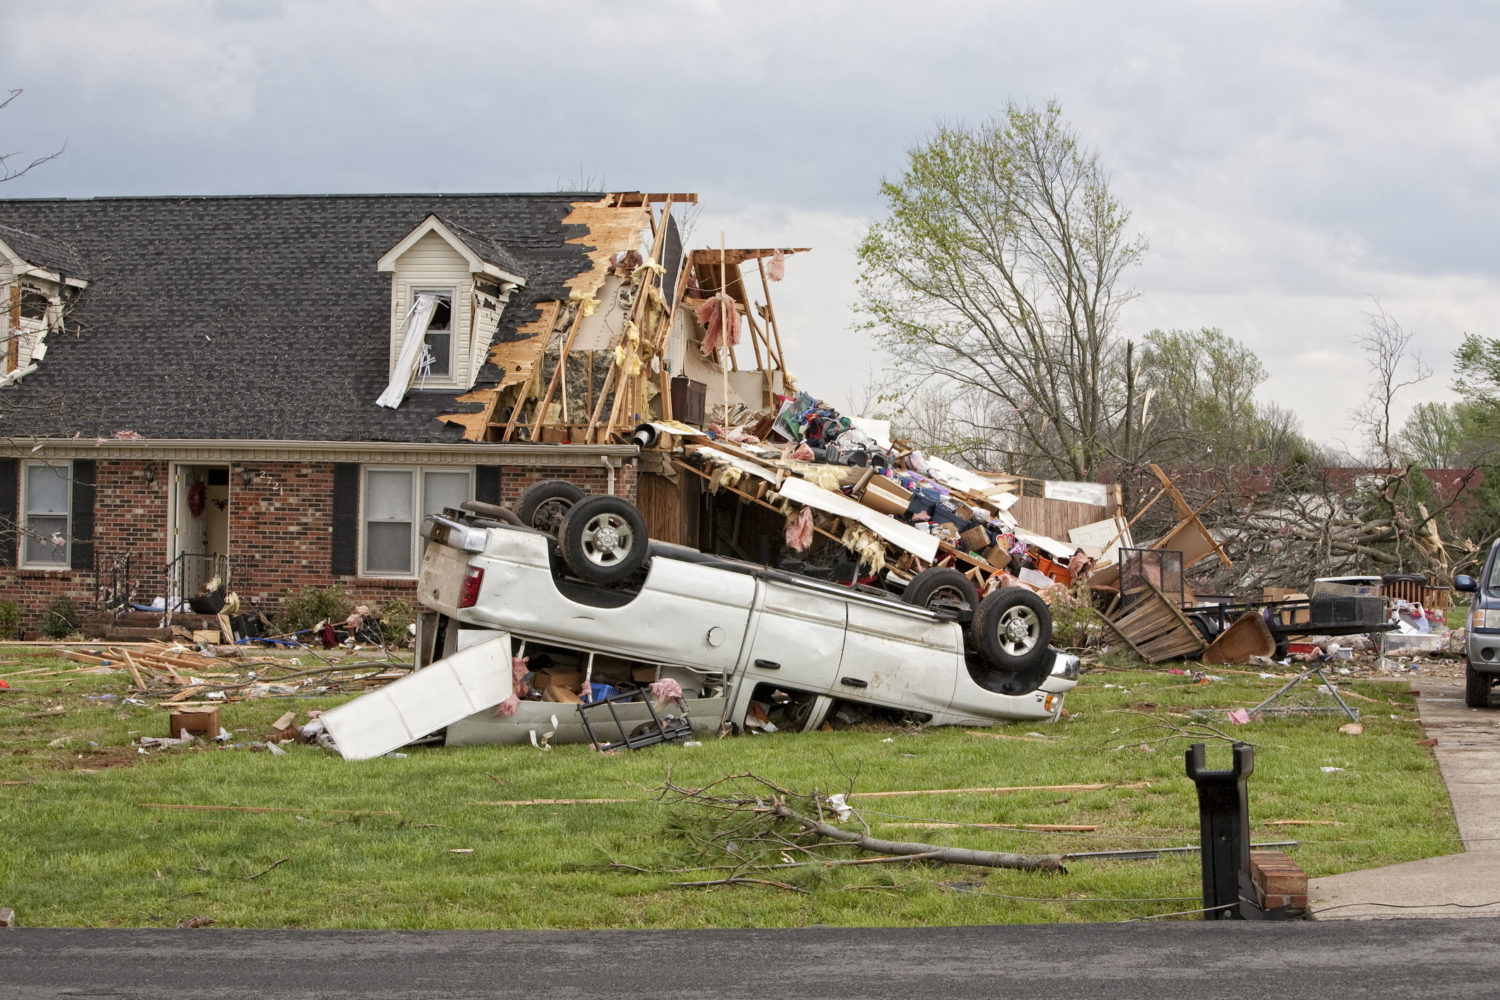 A severely damaged home in Mississippi after a tornado